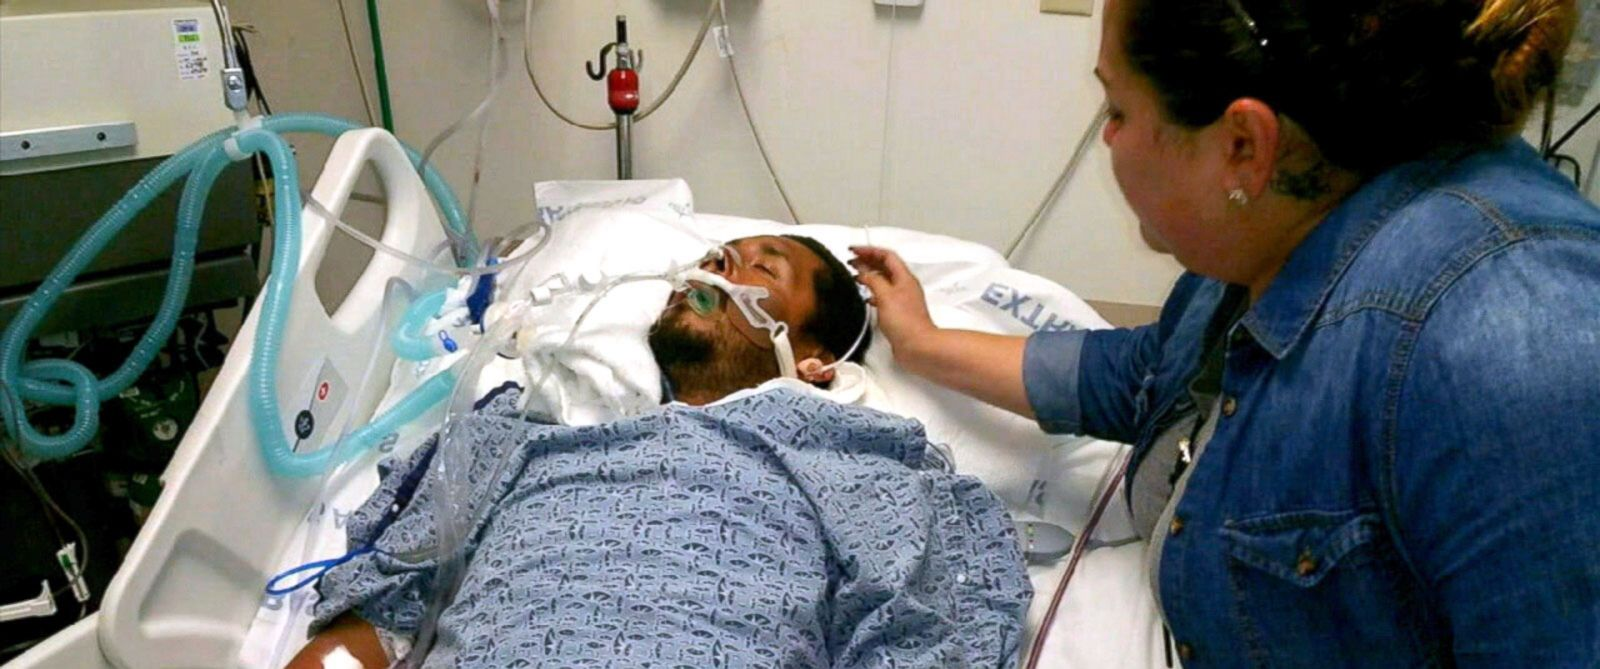 PHOTO: Fermin Vincent Valenzuela was in a medically-induced coma after getting into an altercation with police outside a 7-Eleven in Anaheim, California, on July 2, 2016, according to his family.